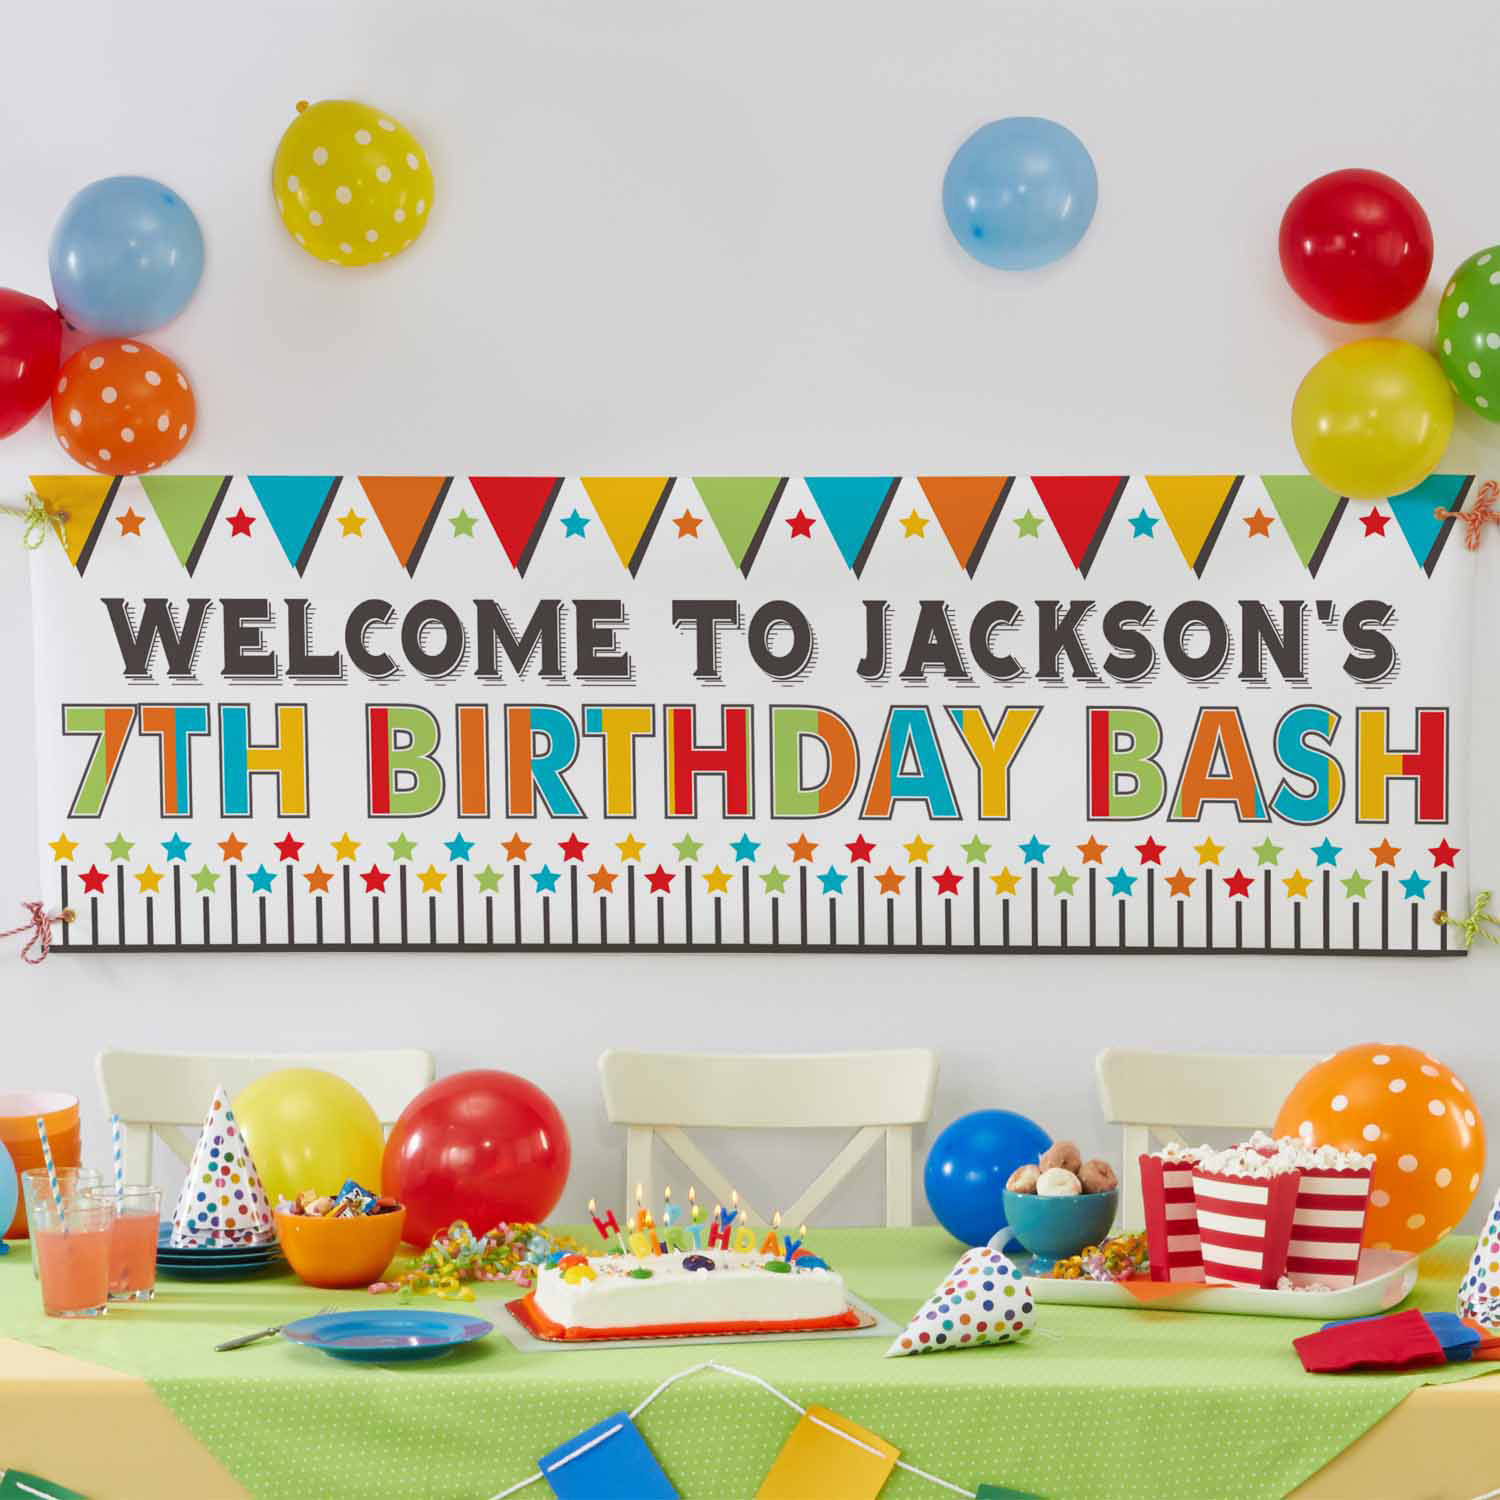 Personalized Say It Big Celebration Banner, Available in 2 Colors